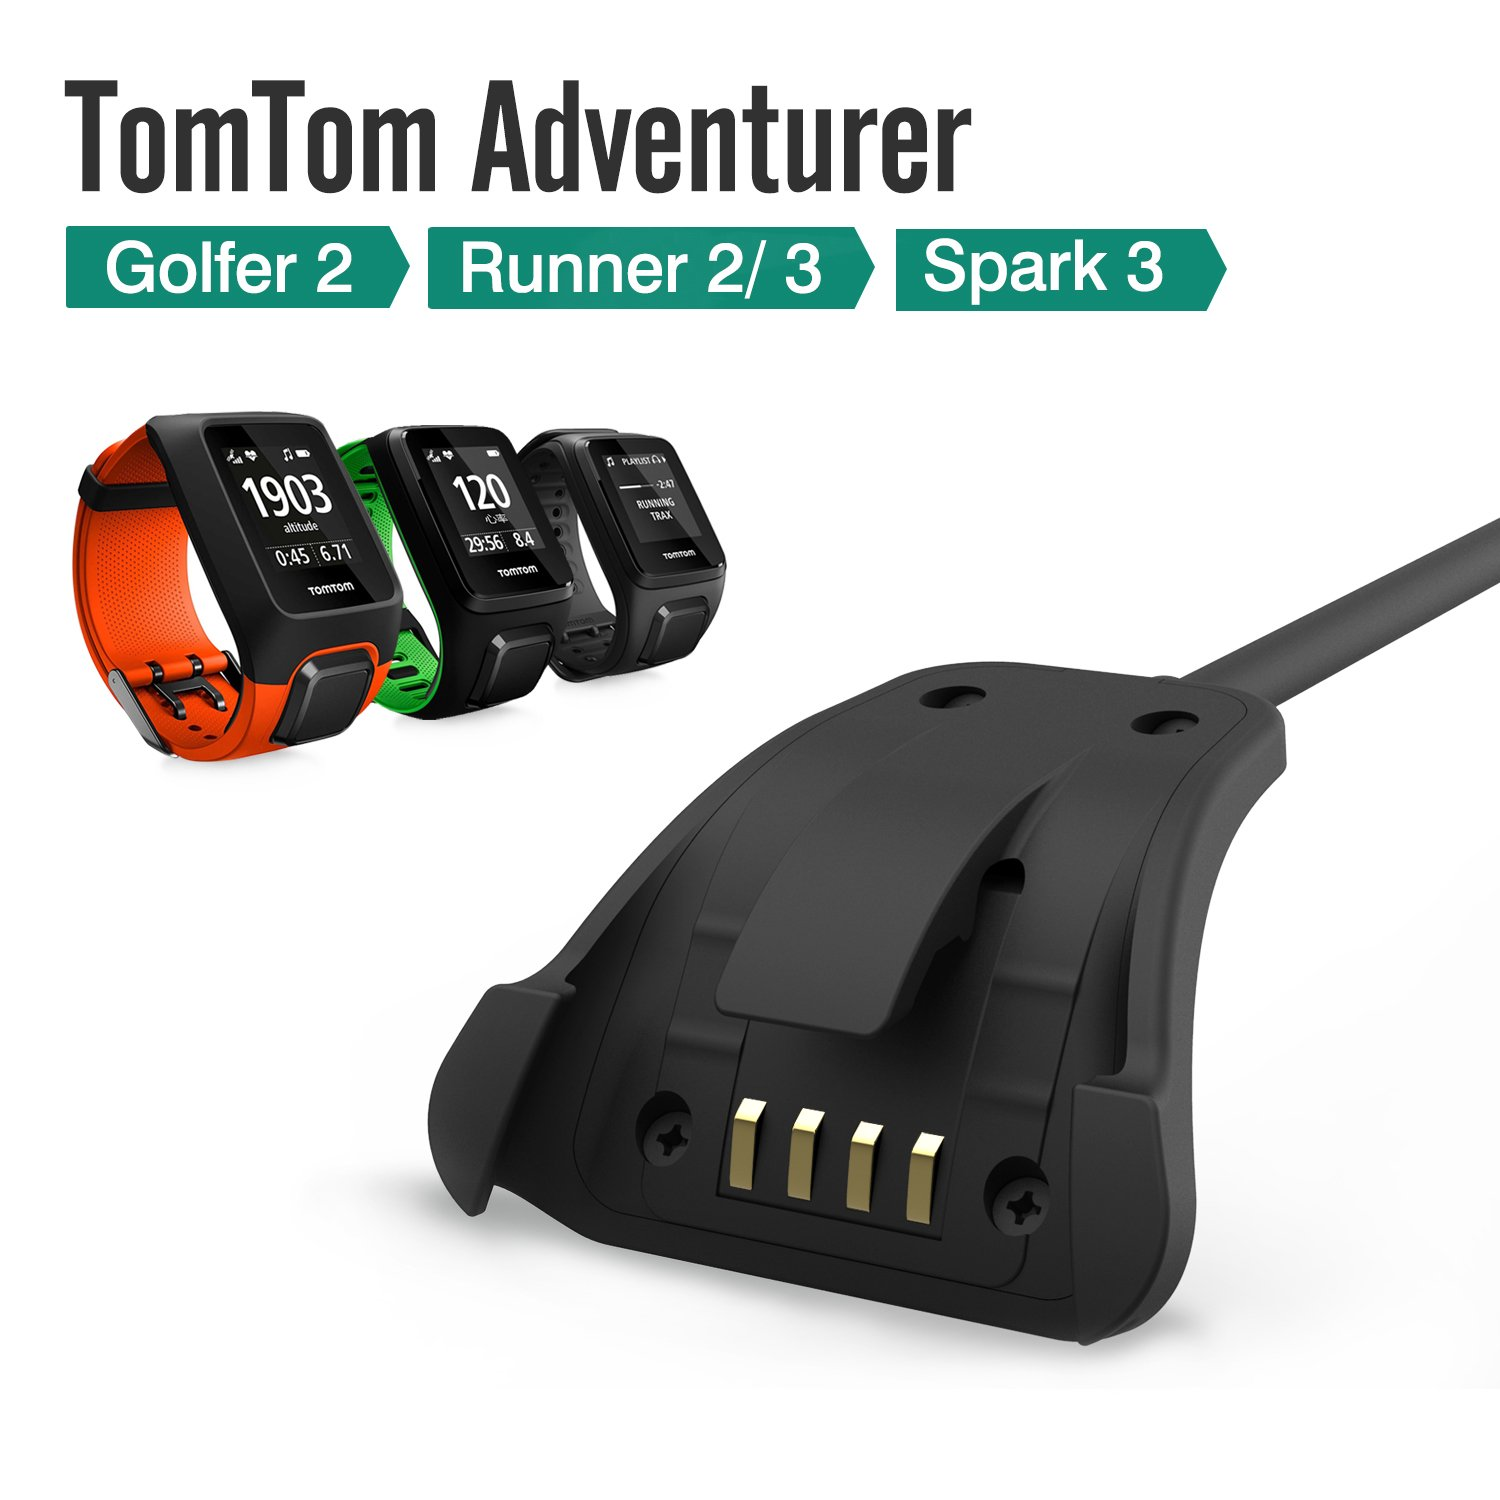 MoKo Tomtom Adventurer Charger Dock, USB Data Sync Charge Cradle Dock Charger with 1M Charging Cable for Tomtom Adventurer/ Golfer2/ Spark3/ Runner2/ ...